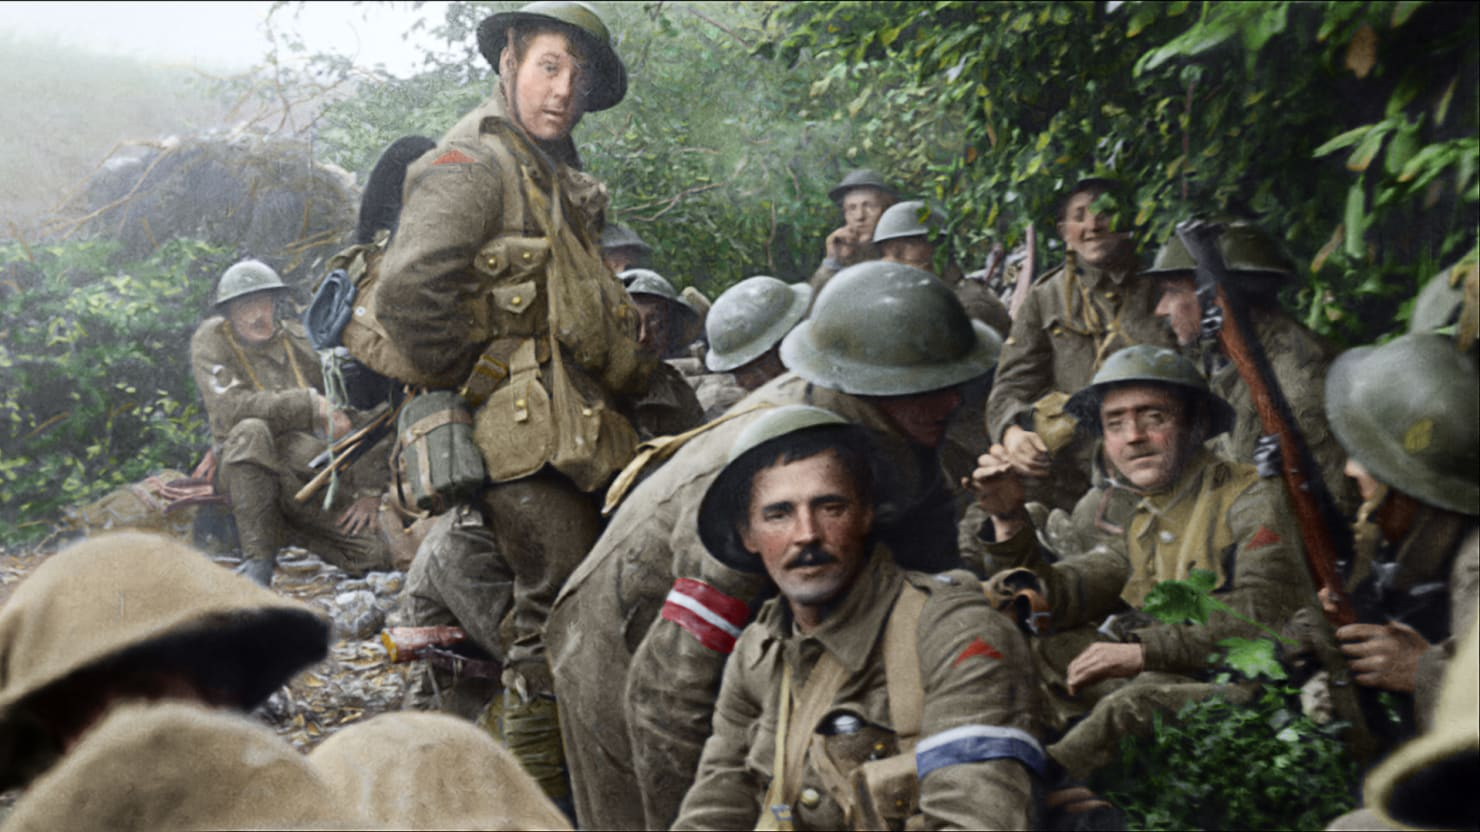 Peter Jackson's 'They Shall Not Grow Old' Is a Stunning Tribute to World War I's Heroes